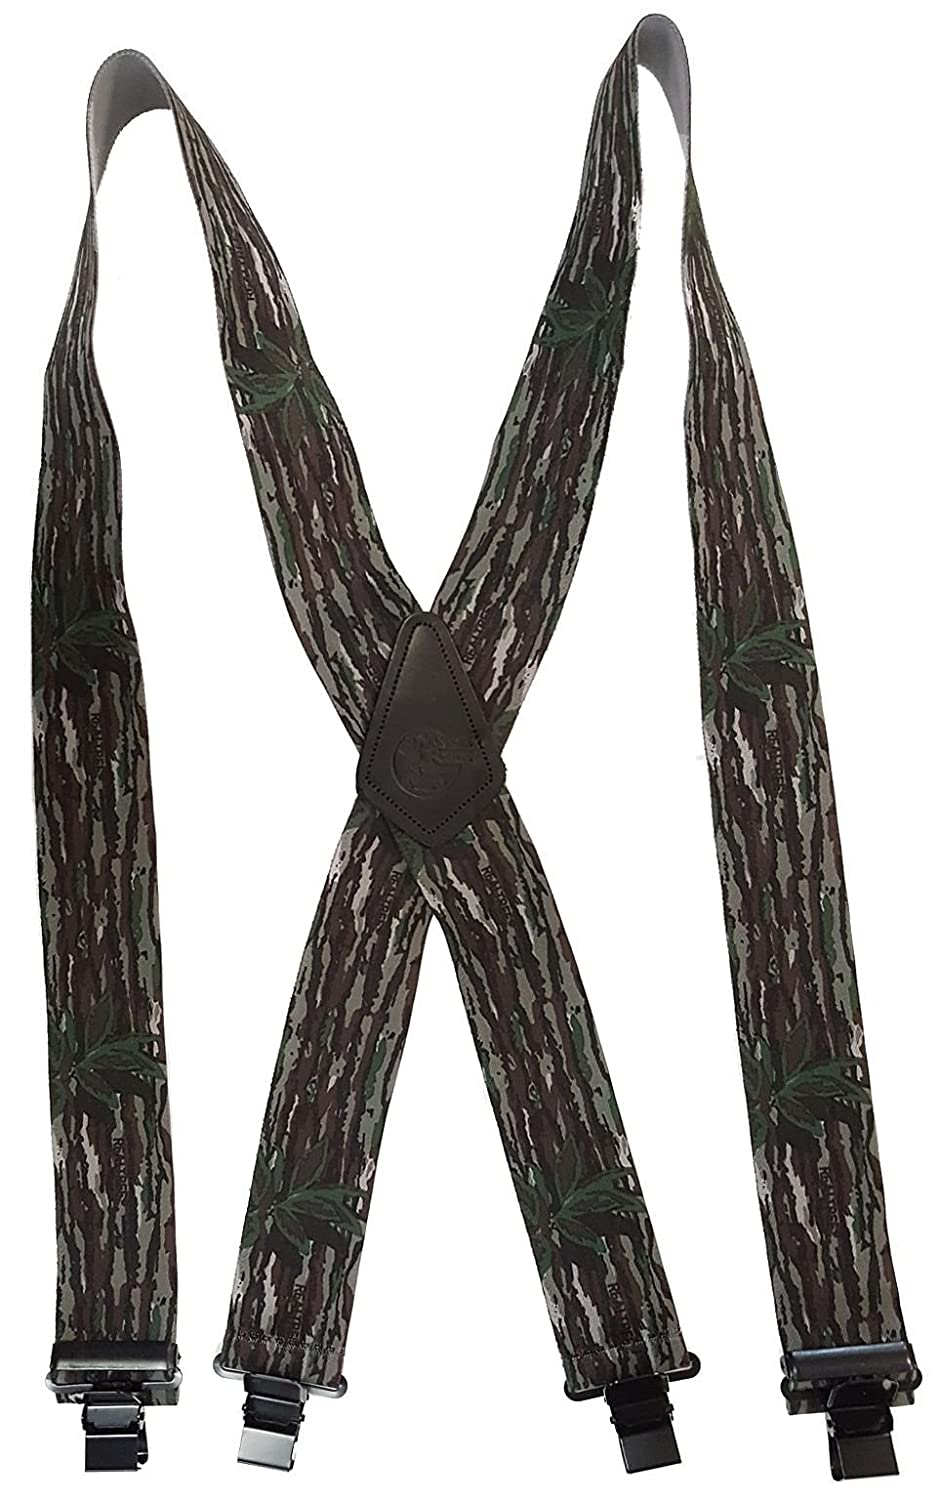 USA MADE CUSTOM SUSPENDERS • 2 WIDE • STRONG METAL CLIPS • BUY AMERICAN !